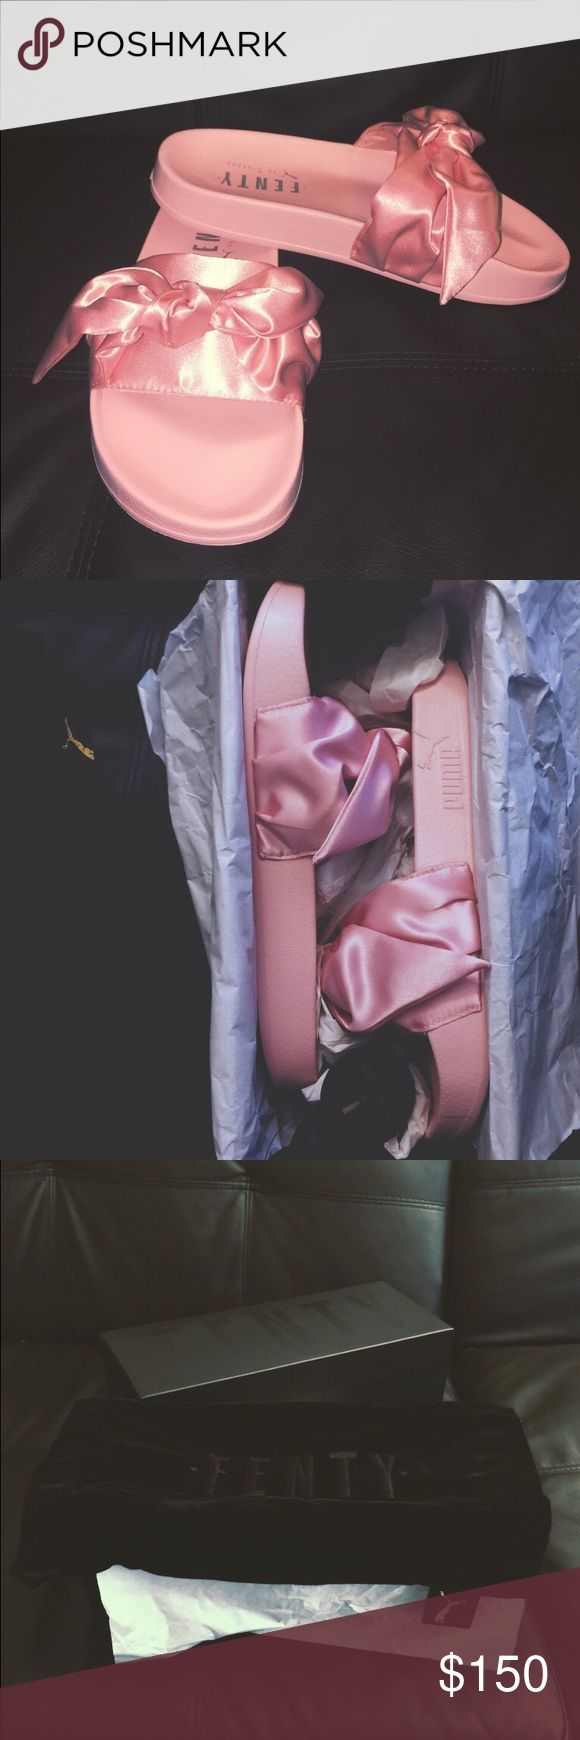 Pink Fenty Bow Slides by Rihanna NEVER BEEN WORN PRICE IS NEGOTIABLE! Women's size 6.5, Men's 5.5. Bought it from the official PUMA website before they sold out. Your purchase will come with the FENTY shoe bag and the box. Puma Shoes Slippers